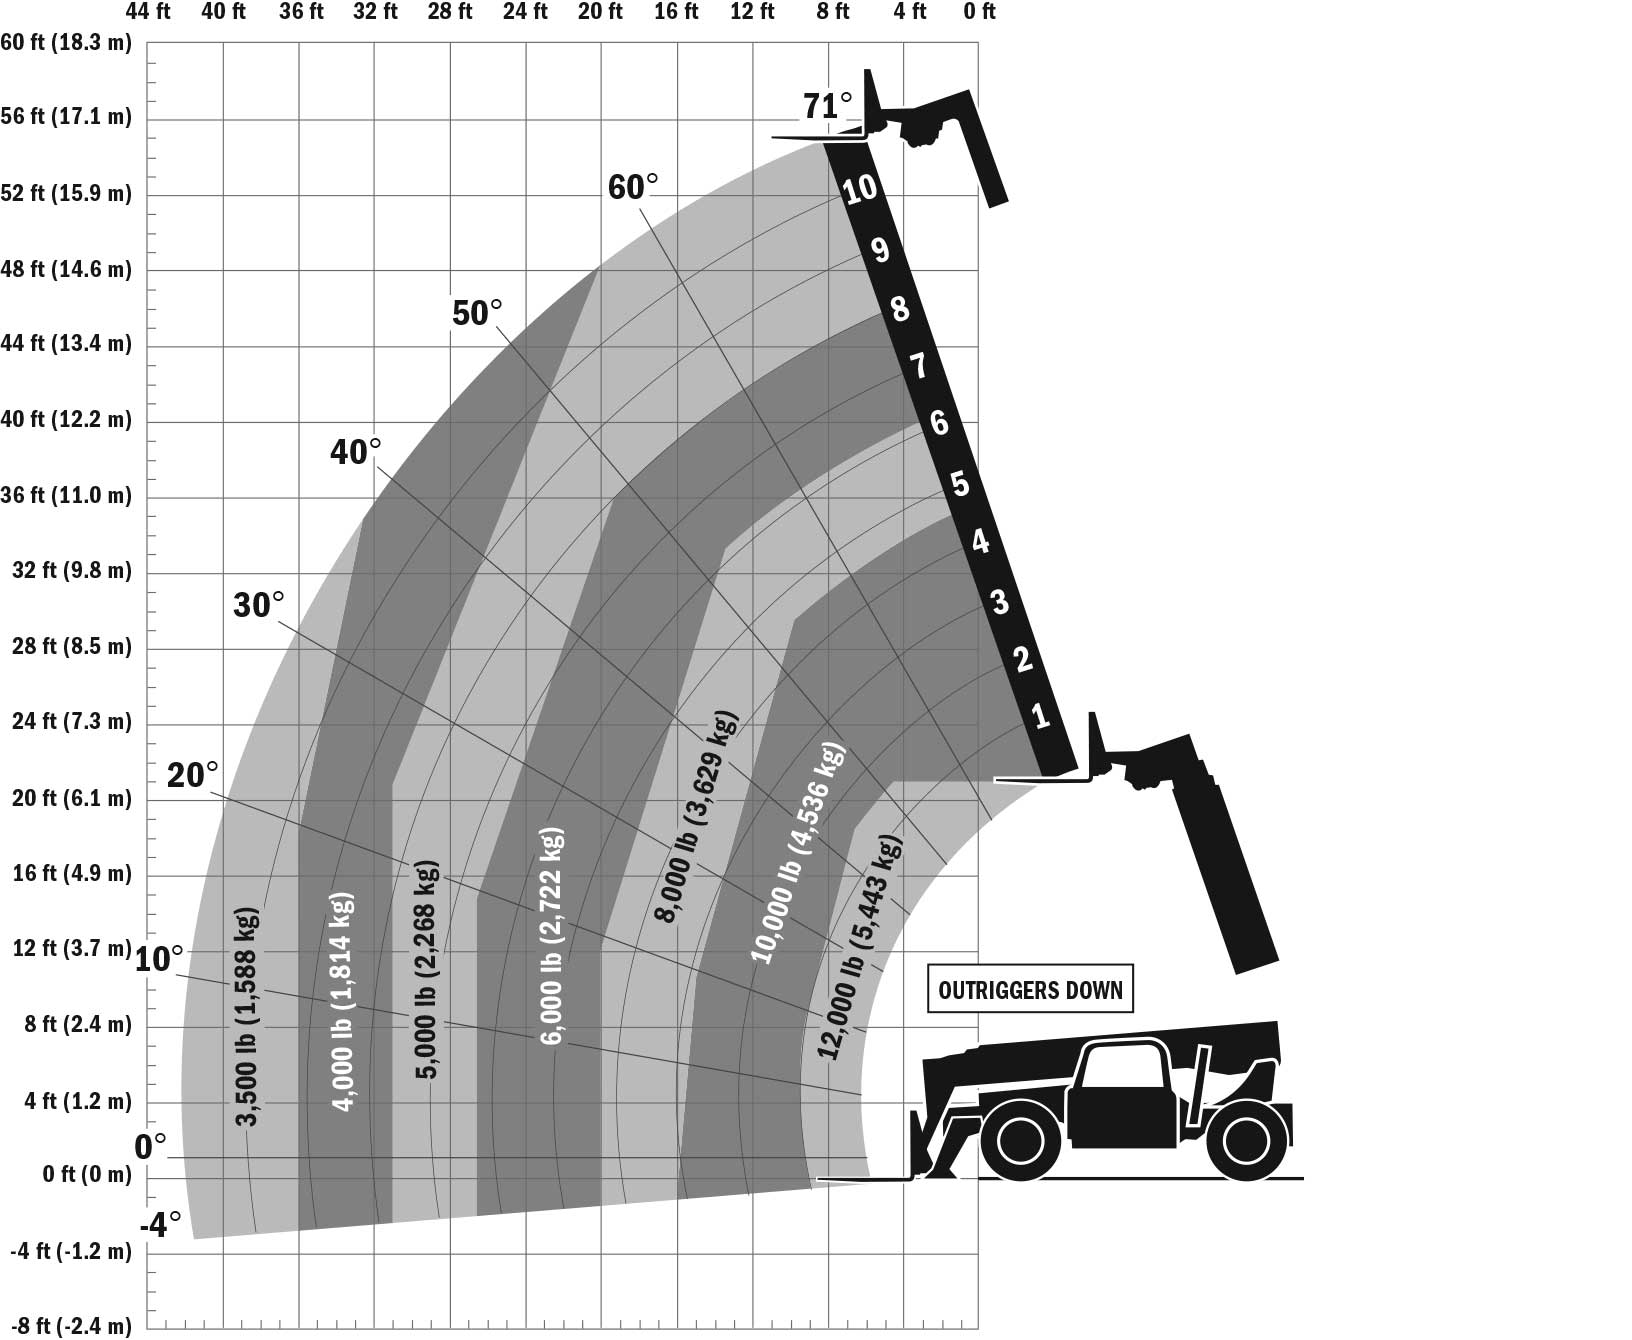 G A Down Load Chart on Jlg Parts Diagram